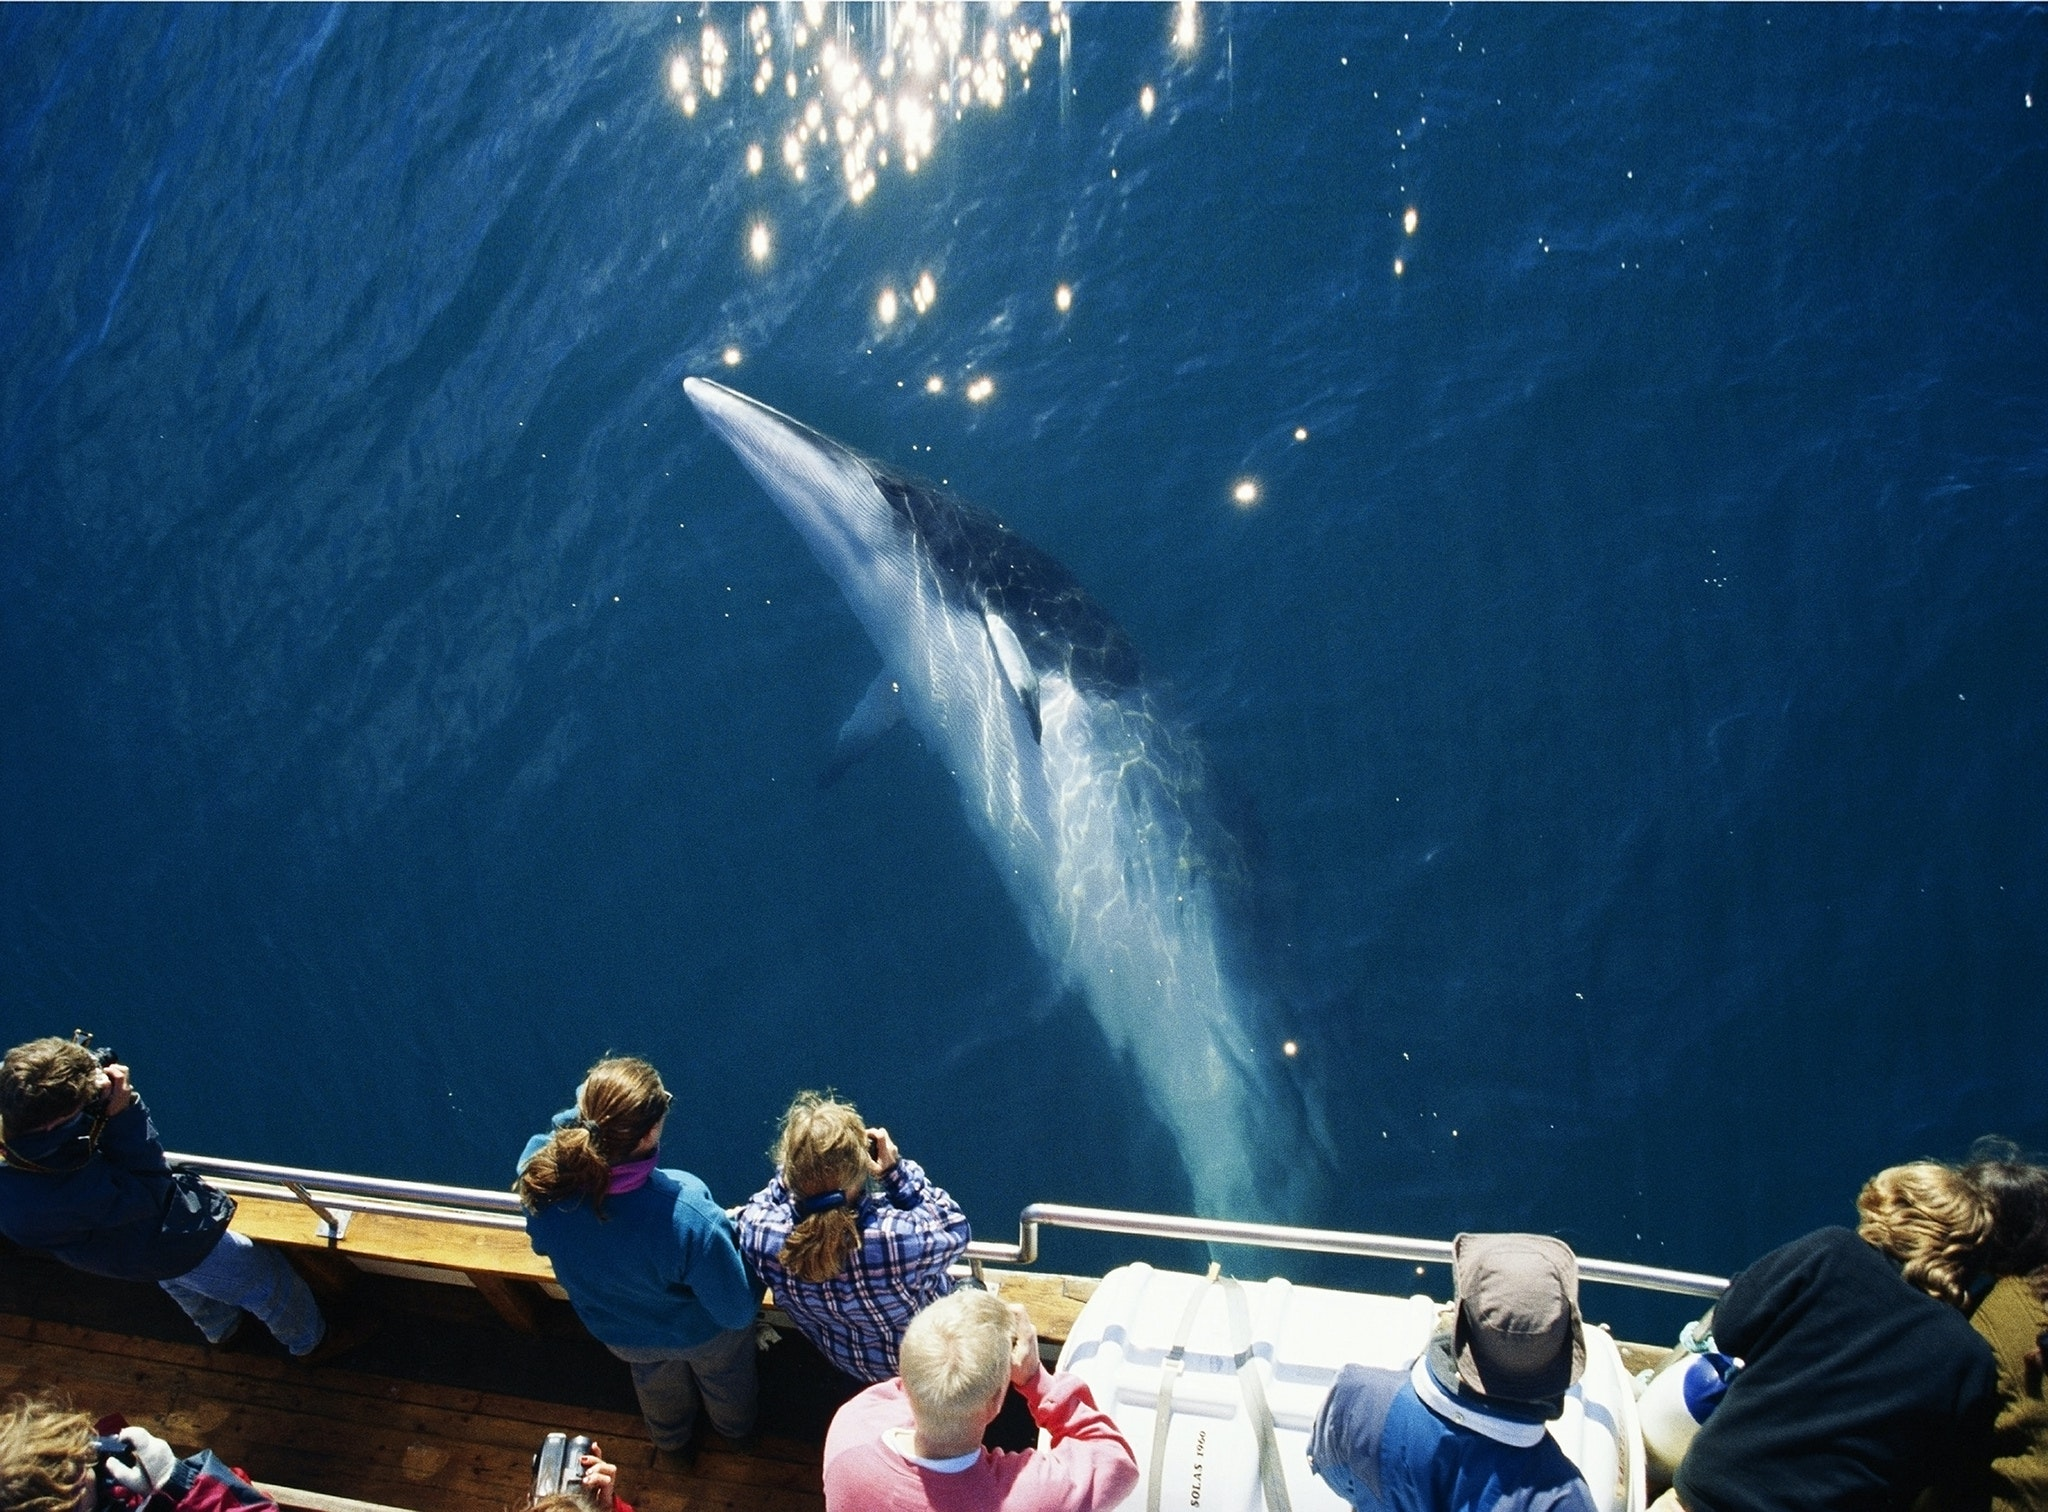 Admire whales in whale watching tour in Iceland!